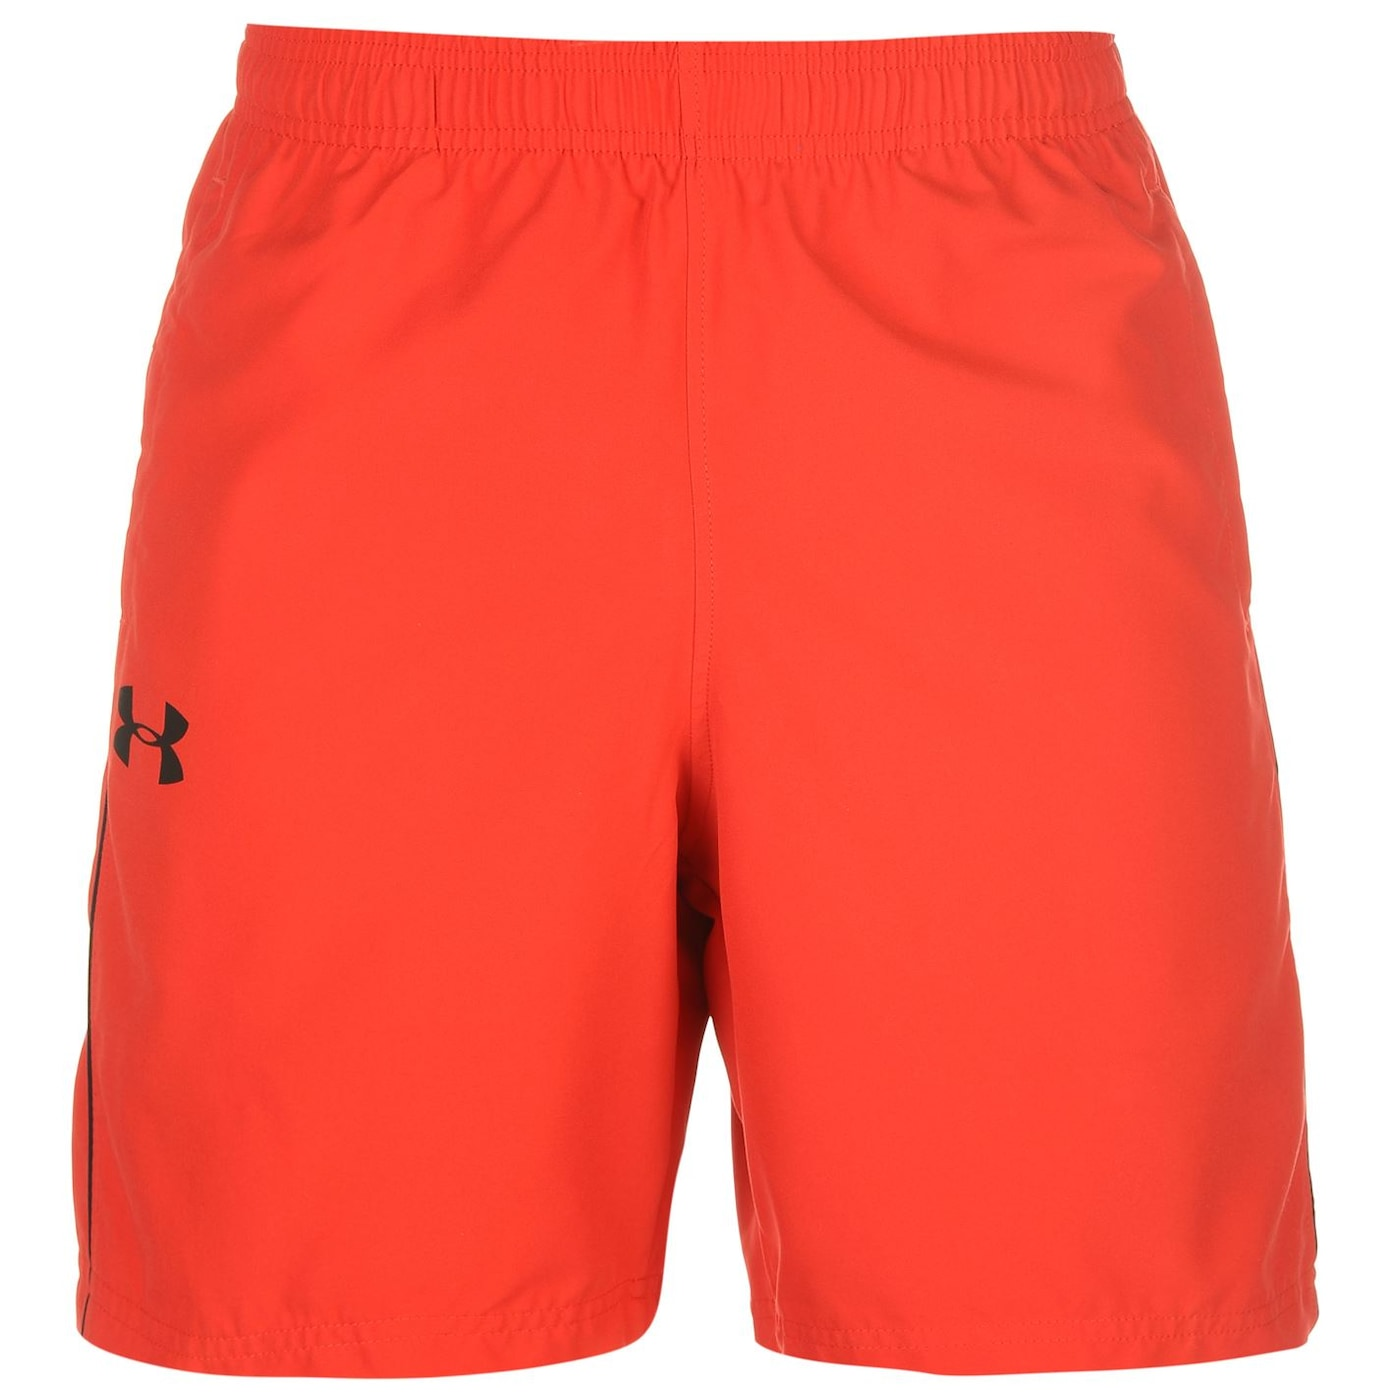 Under Armour Core Woven Shorts Mens